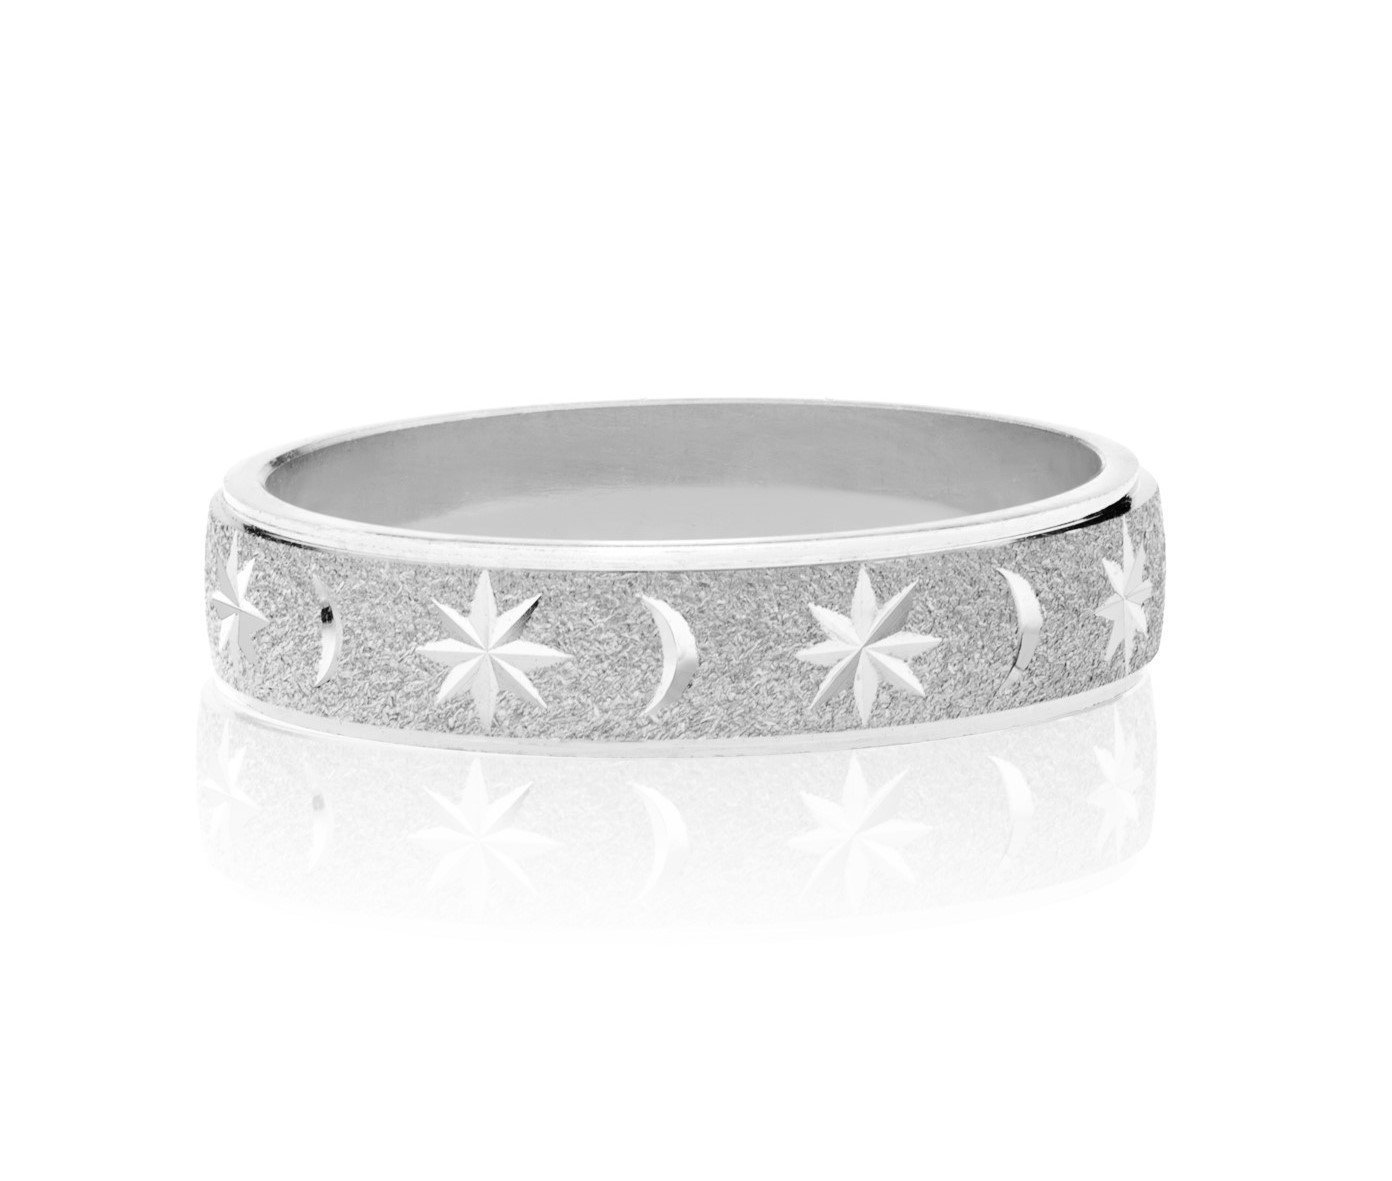 MiaBella Italian Moon and Star Band Ring in Sterling Silver (Rhodium, 9)